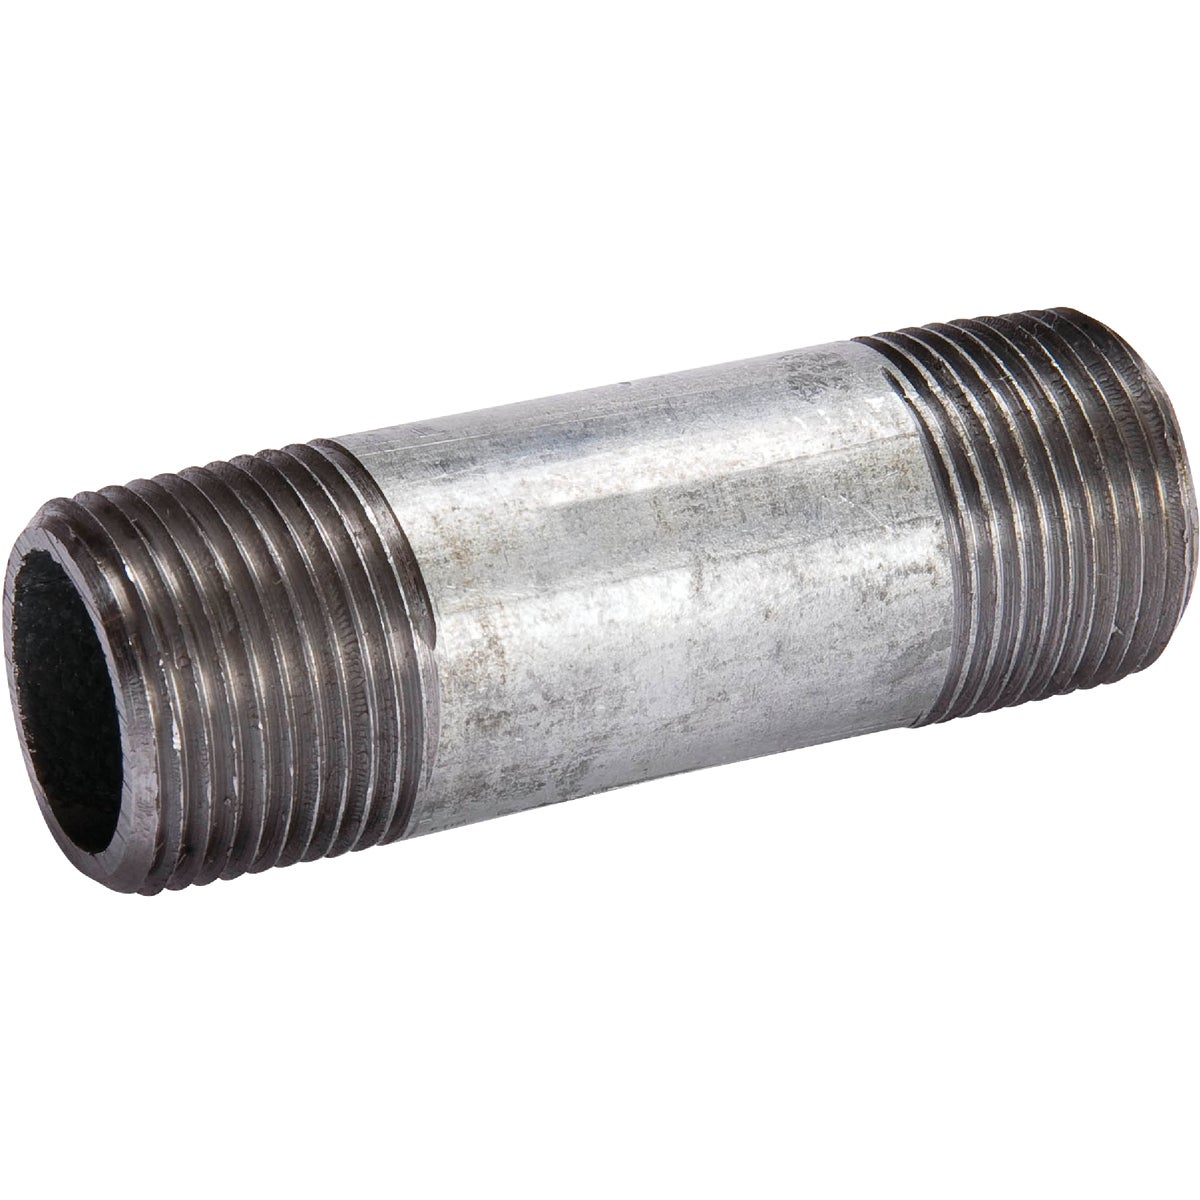 1/8X1-1/2 GALV NIPPLE - 10101 by Southland Pipe Nippl